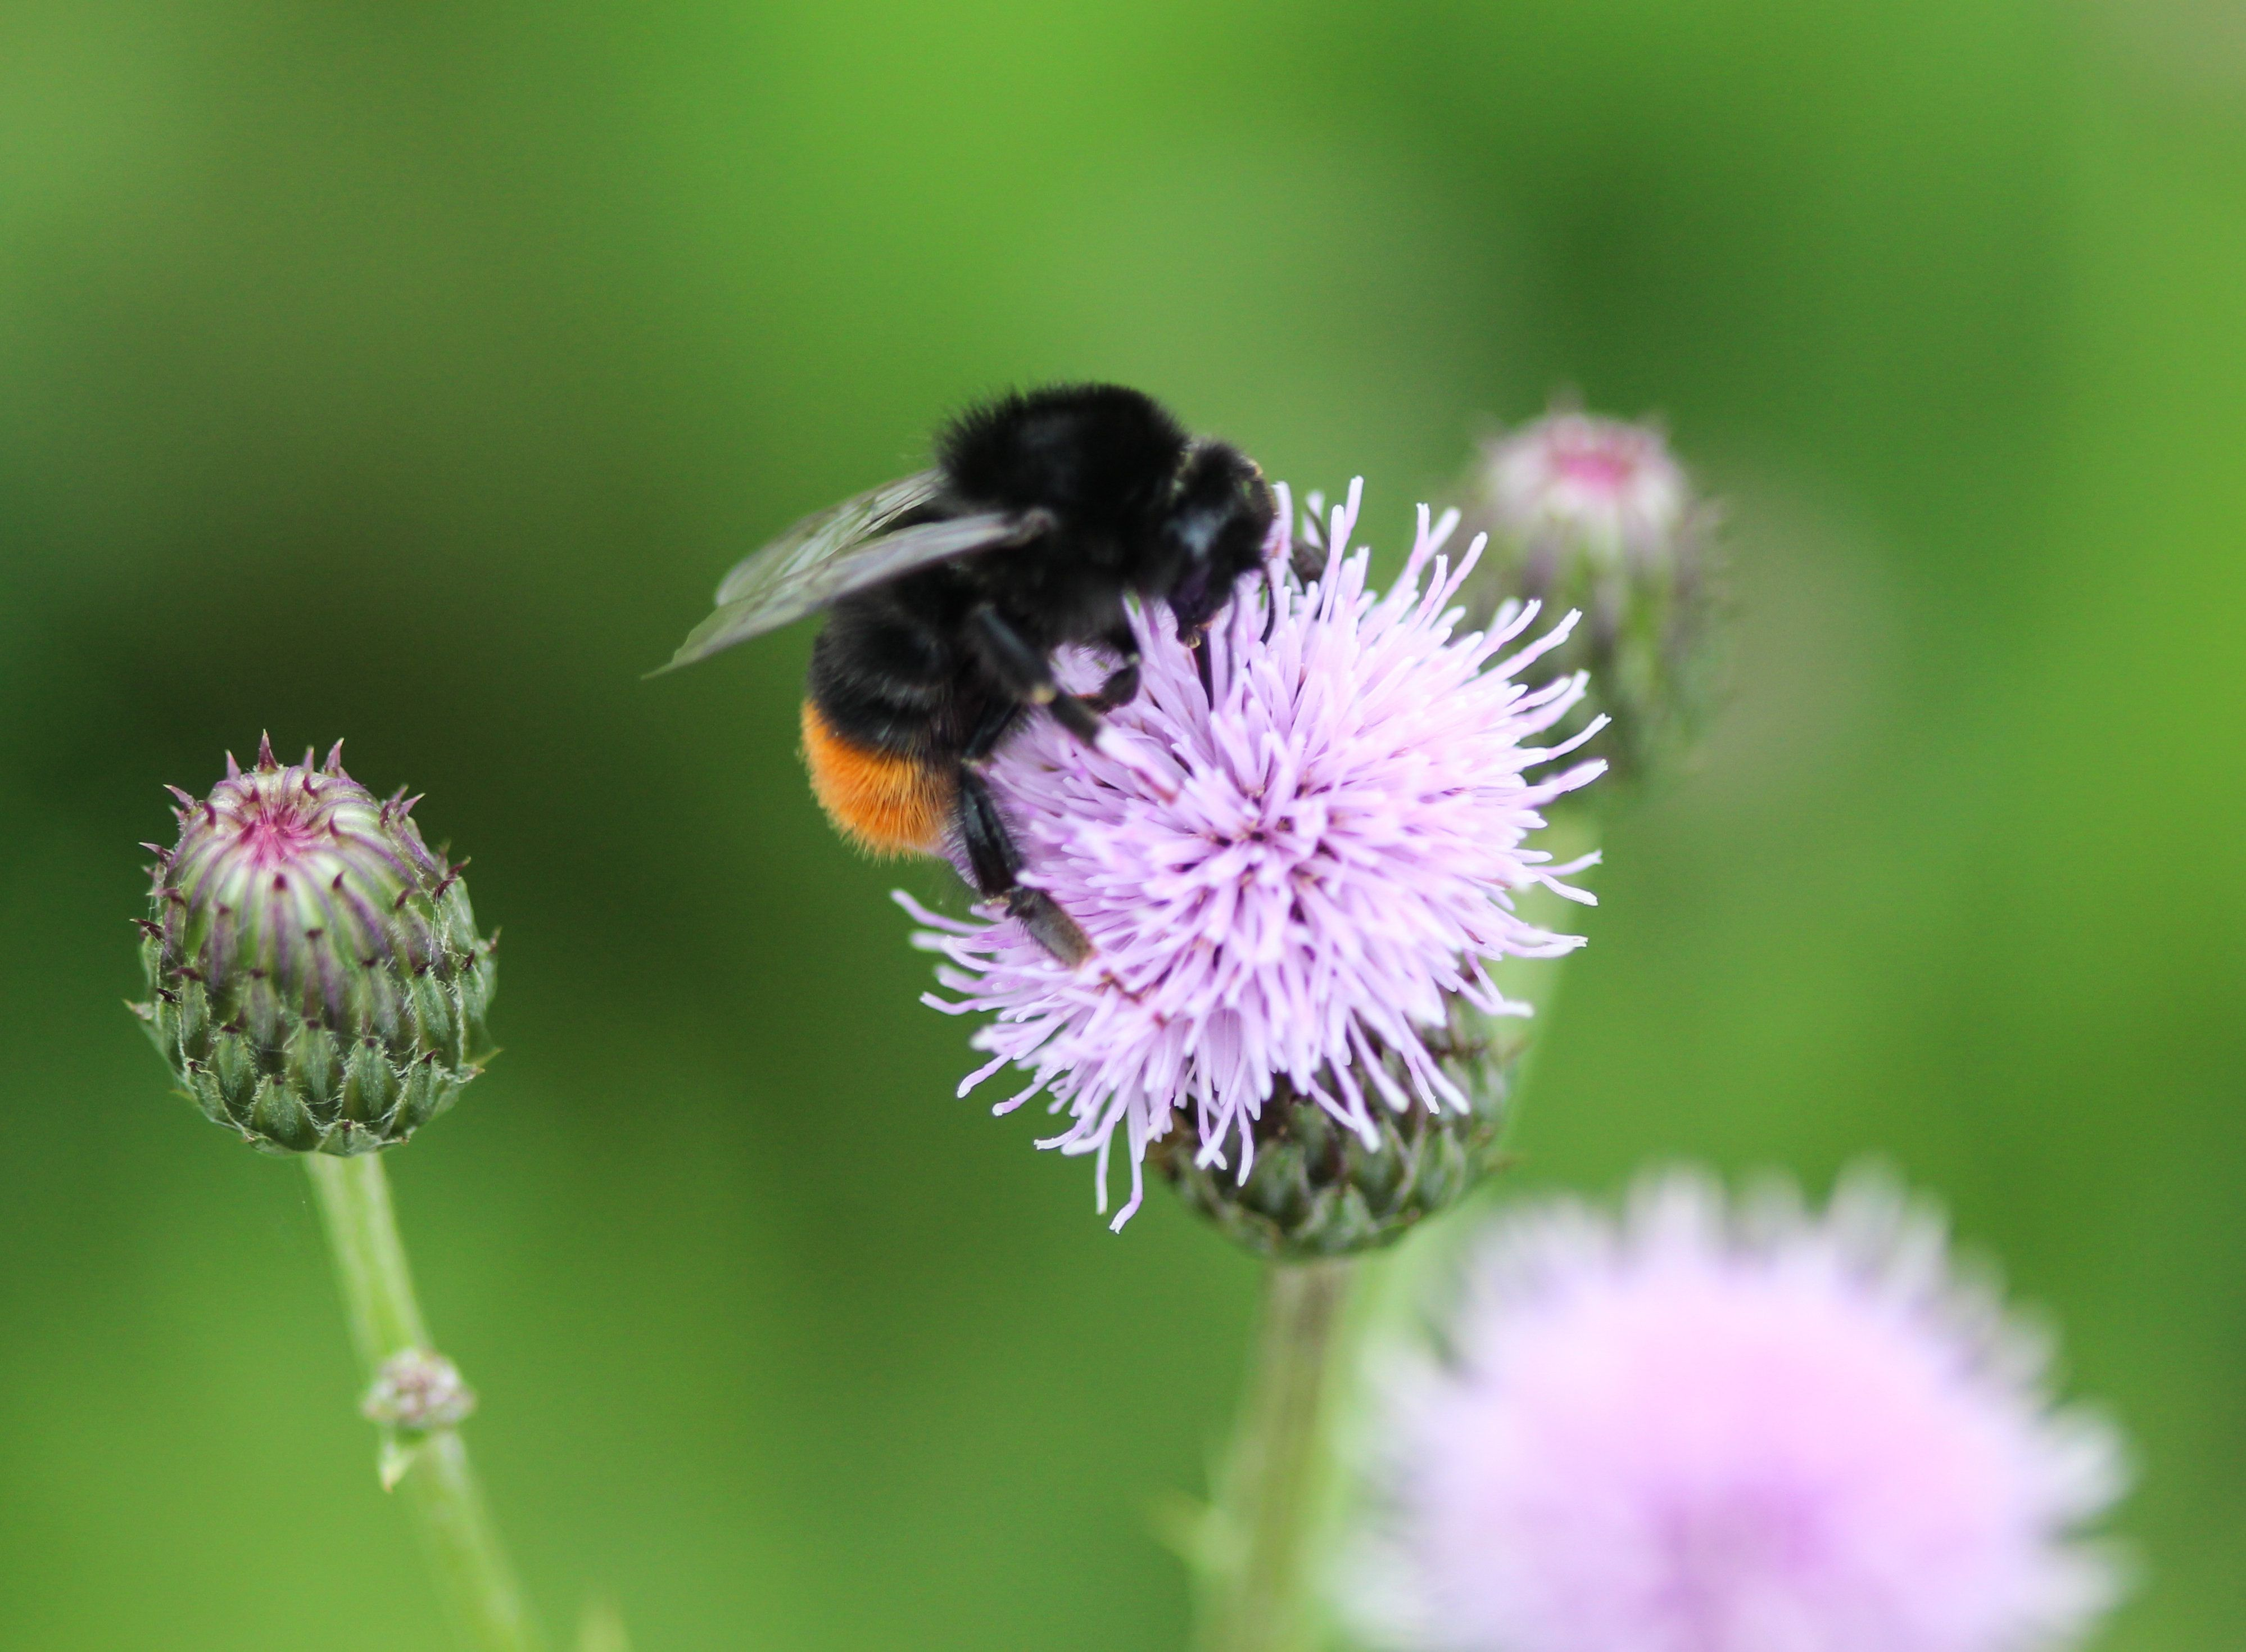 Pollinators like the red-tailed bumblebee are susceptible to threats from urban expansion, climate change and disease.